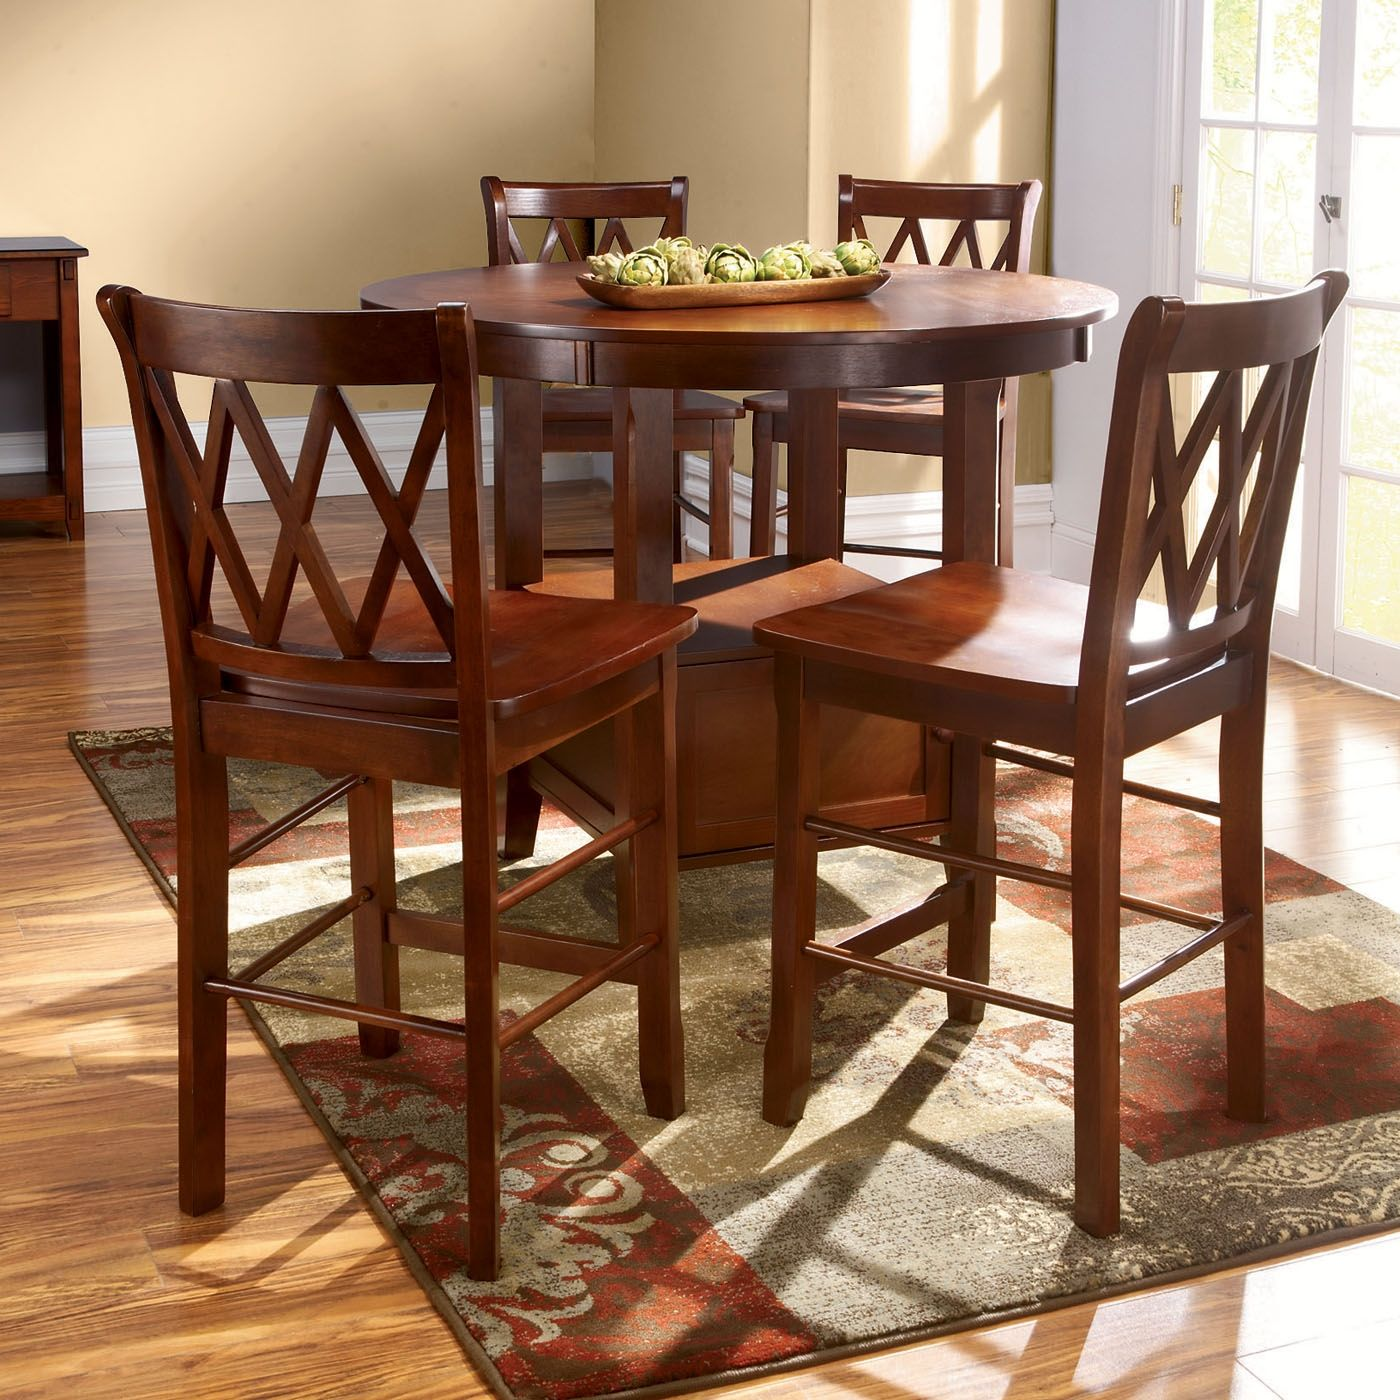 high top kitchen table set  Top kitchen table, Kitchen table